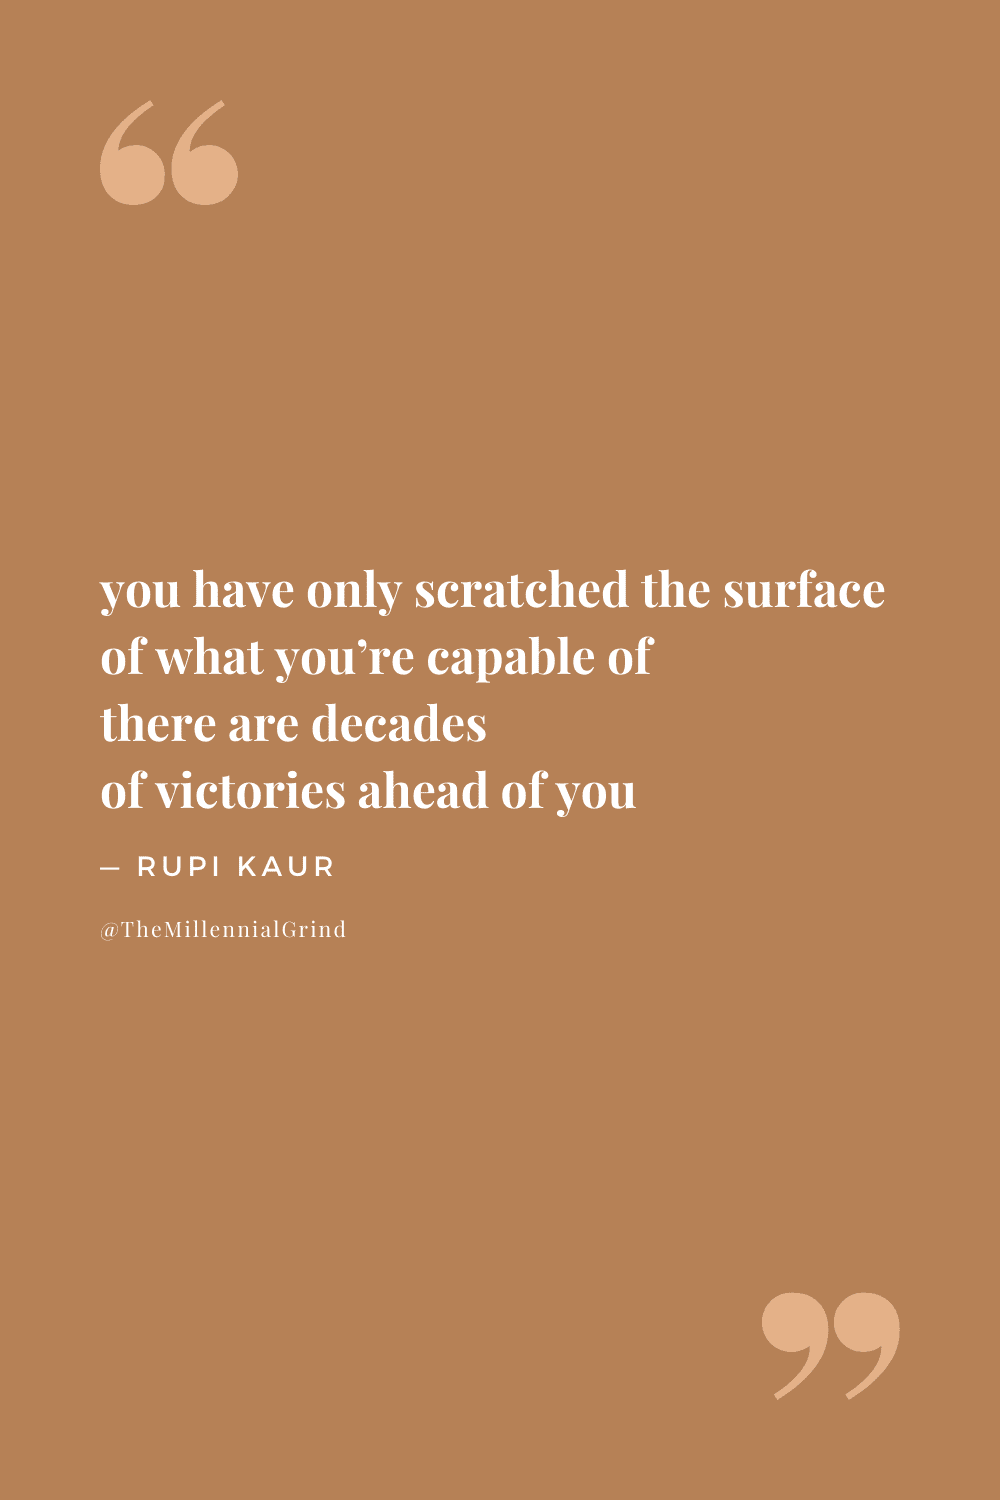 Quotes From Home Body by Rupi Kaur